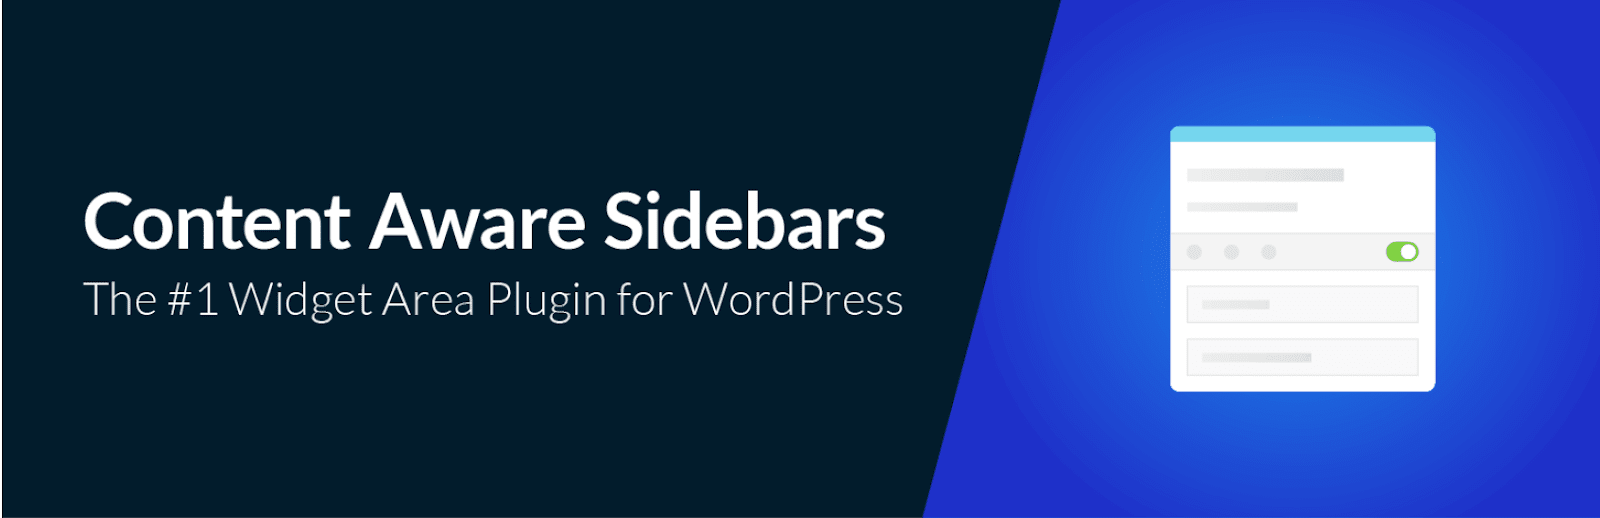 Plugin Content Aware Sidebar WordPress